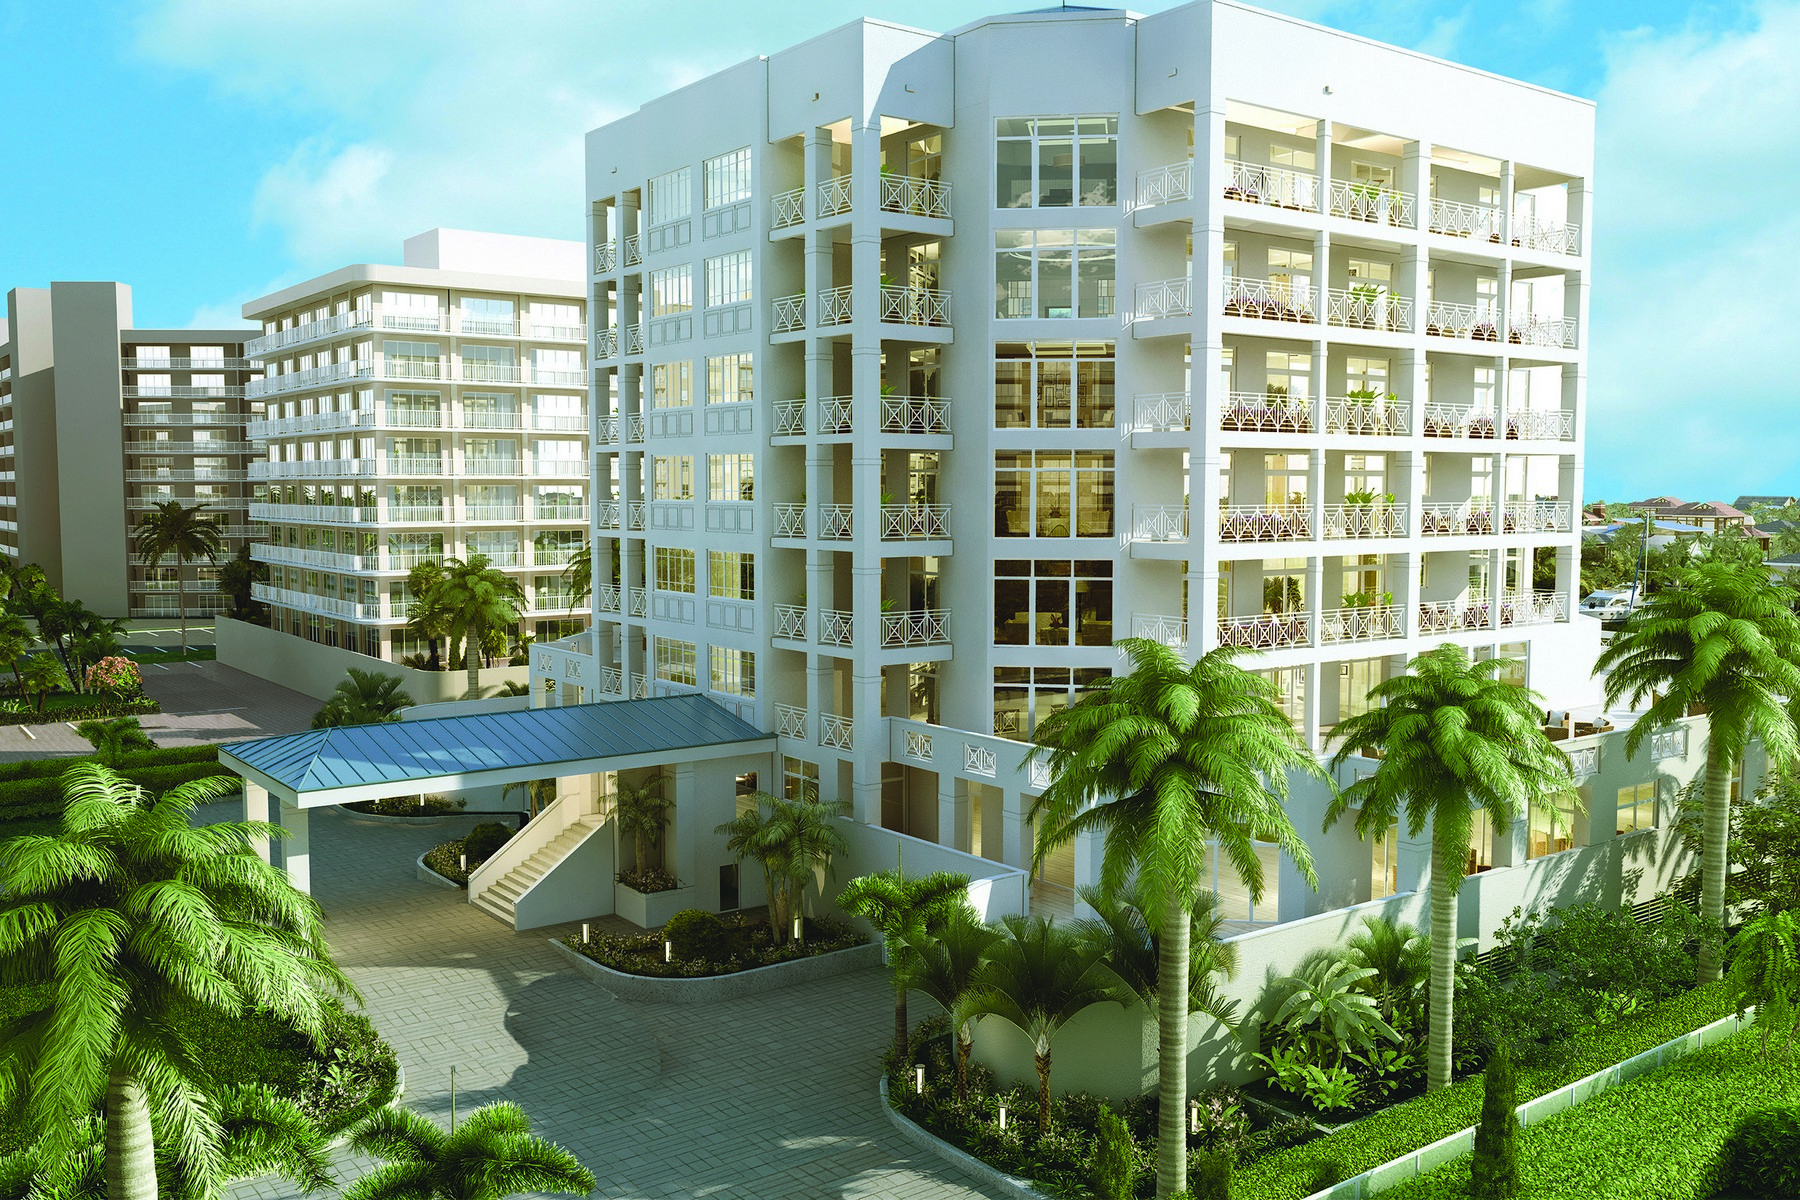 Condominio per Vendita alle ore 3200 S Ocean Blvd , Ph1, Highland Beach, FL 33487 3200 S Ocean Blvd Ph1 Highland Beach, Florida, 33487 Stati Uniti